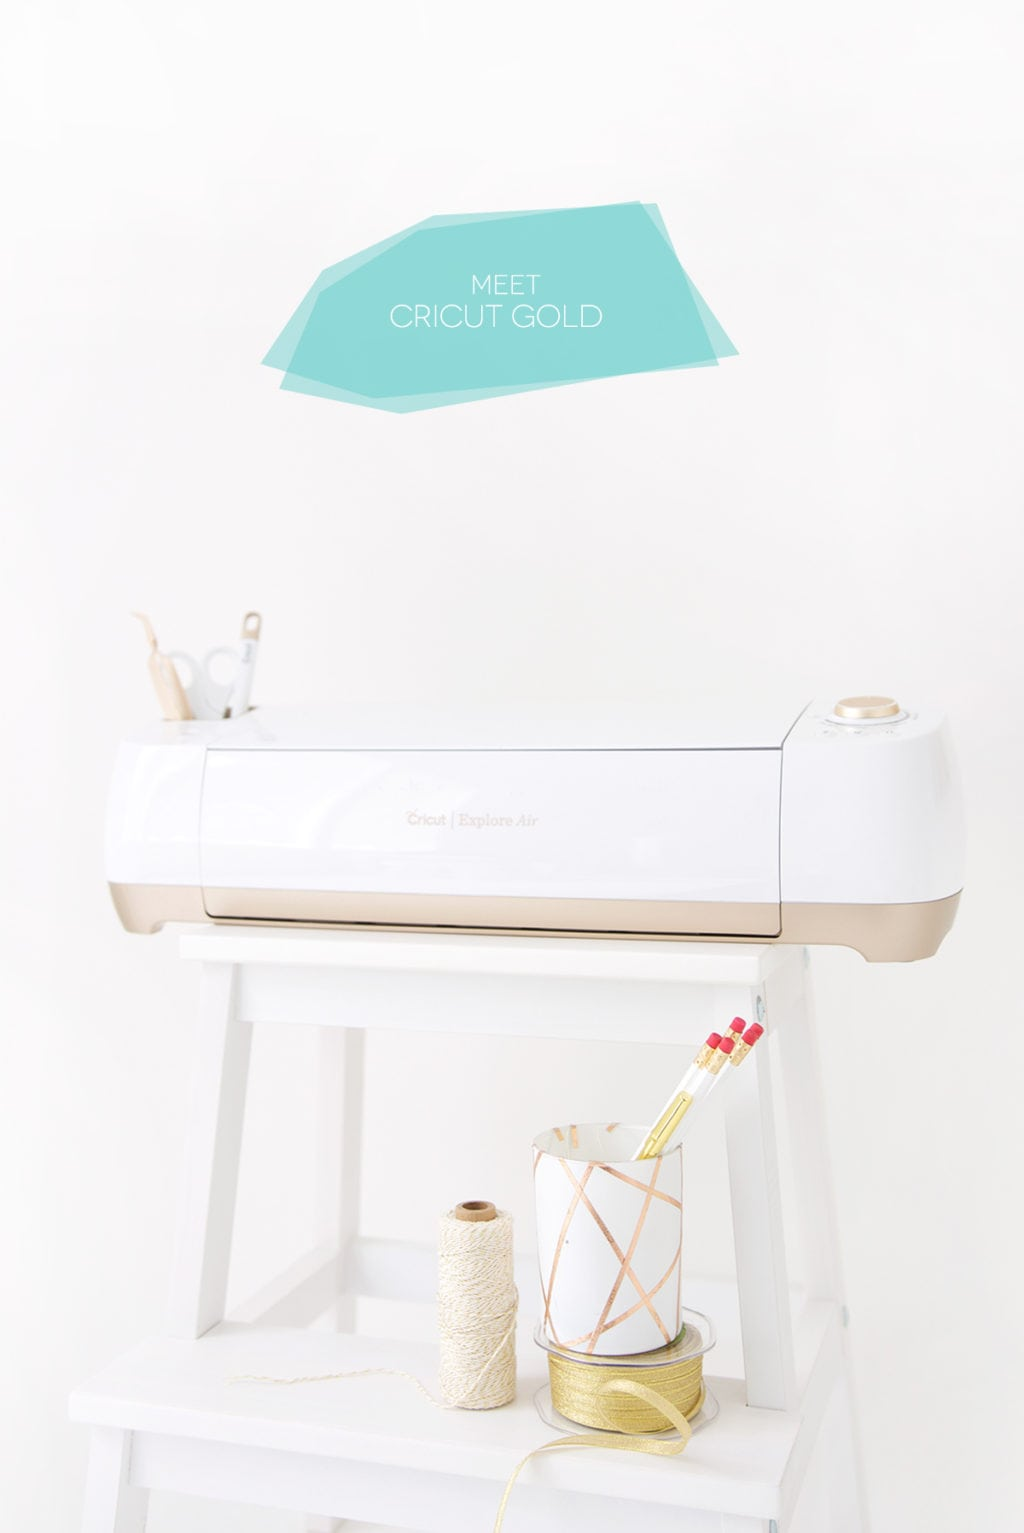 Learn about the new Cricut Explore Gold Projects that are exclusively designed my some of your favorite bloggers and designers